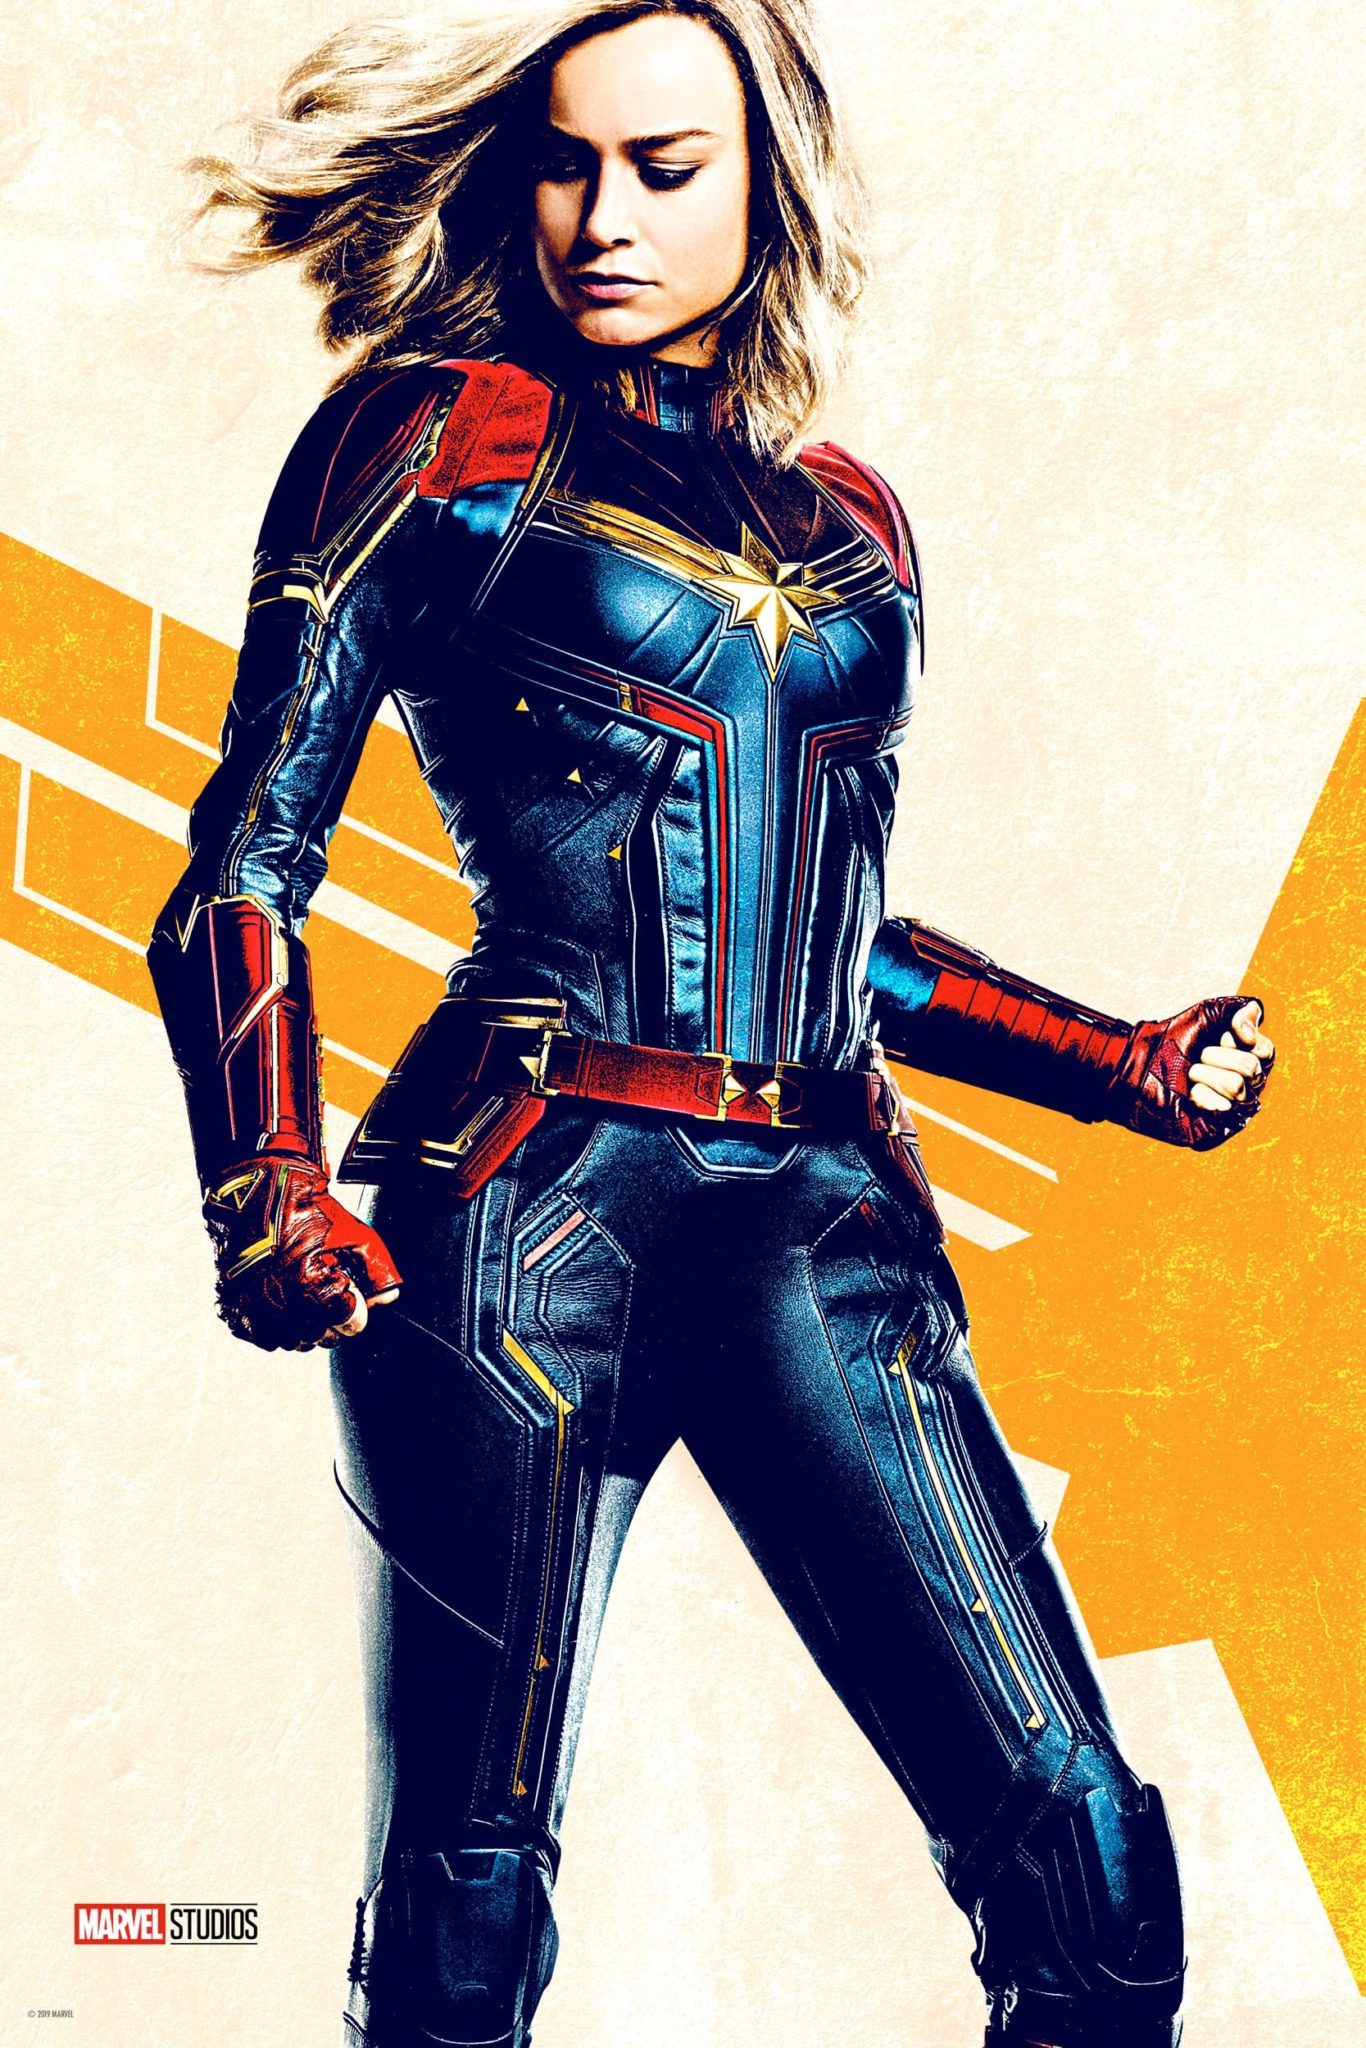 Captain Marvel Movie Posters from Marvel Studios: